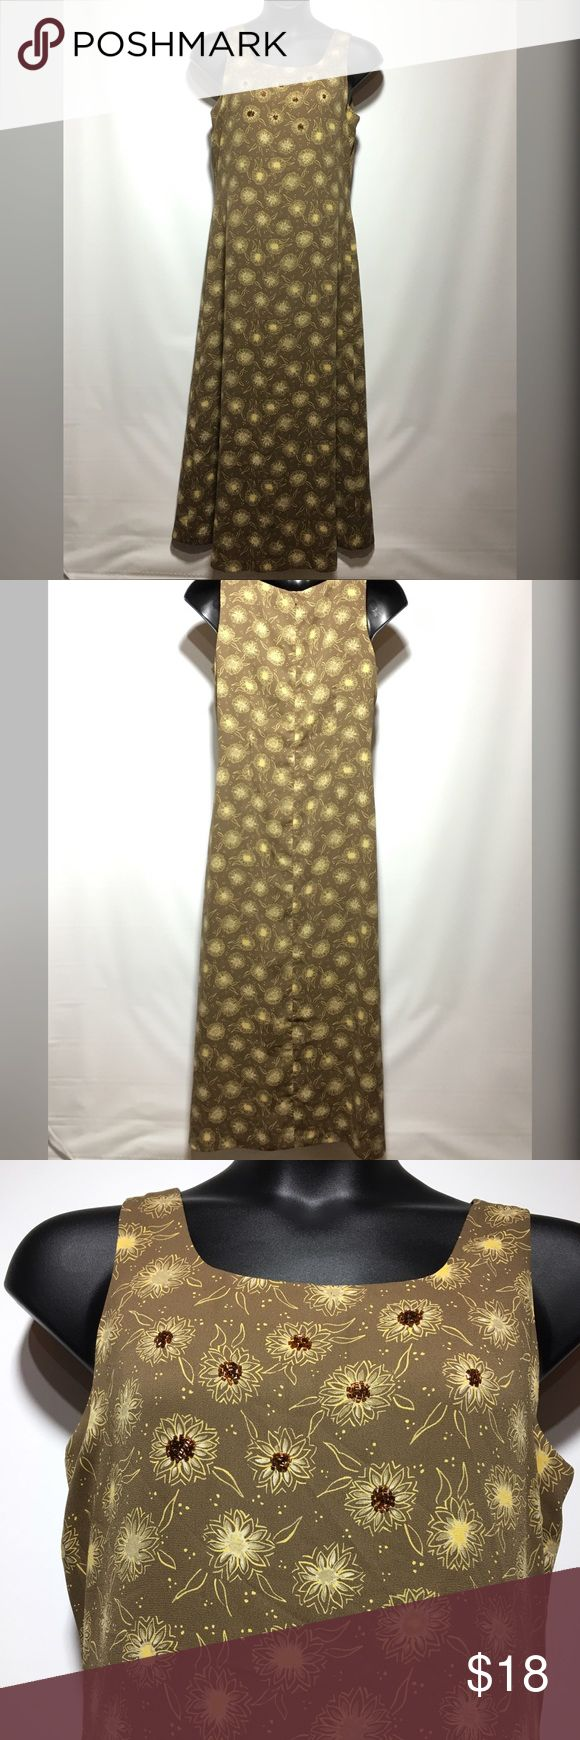 Judith Hart Maxi Dress⬇️ClosetCleanout⬇️ Beautiful golden brown Maxi dress with yellow and cream flowers. This dress is from the Judith Hart Collection and 100% polyester. The back has a small seam that the thread has come lose as seen in last picture..Easily fixed or can be worn as is Judith Hart Dresses Maxi